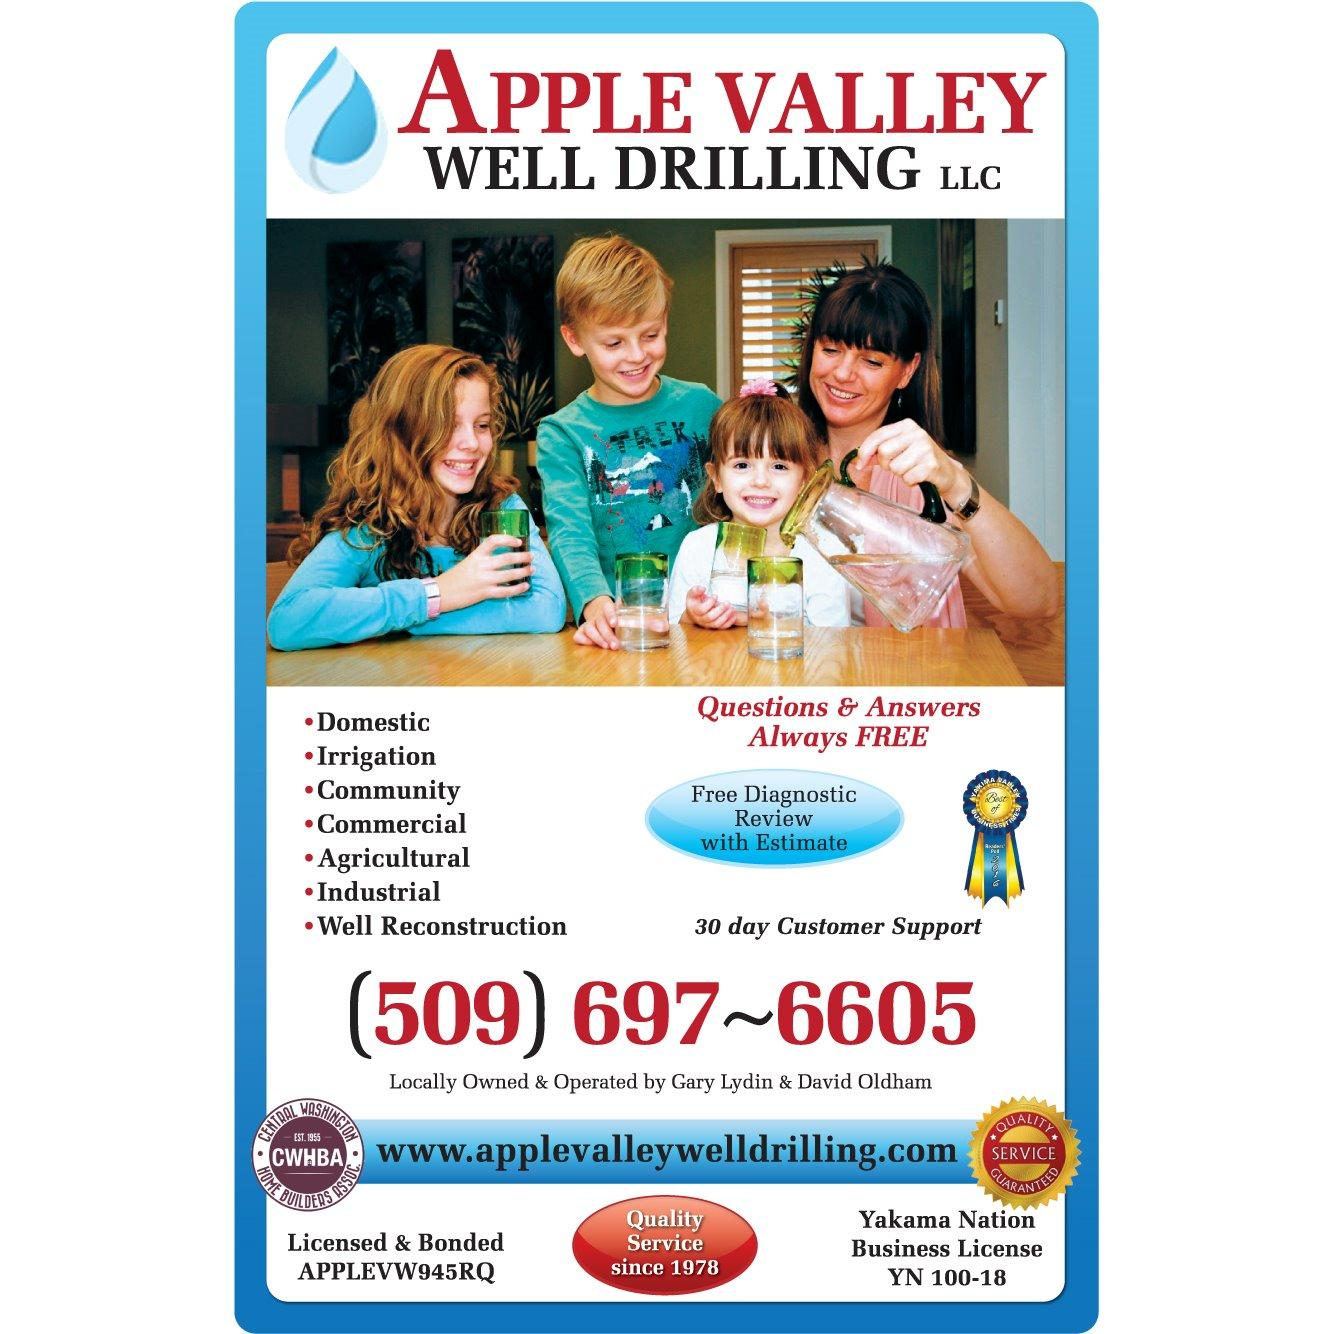 Apple Valley Well Drilling Inc